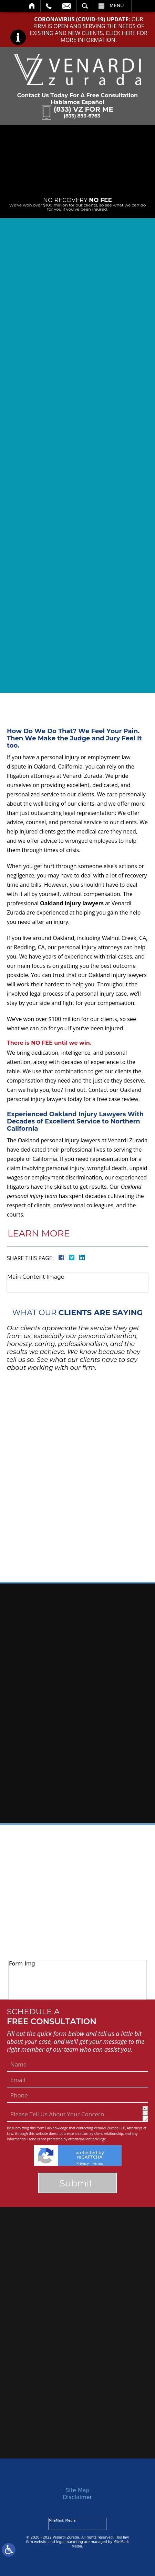 Venardi Law Firm - San Francisco CA Lawyers